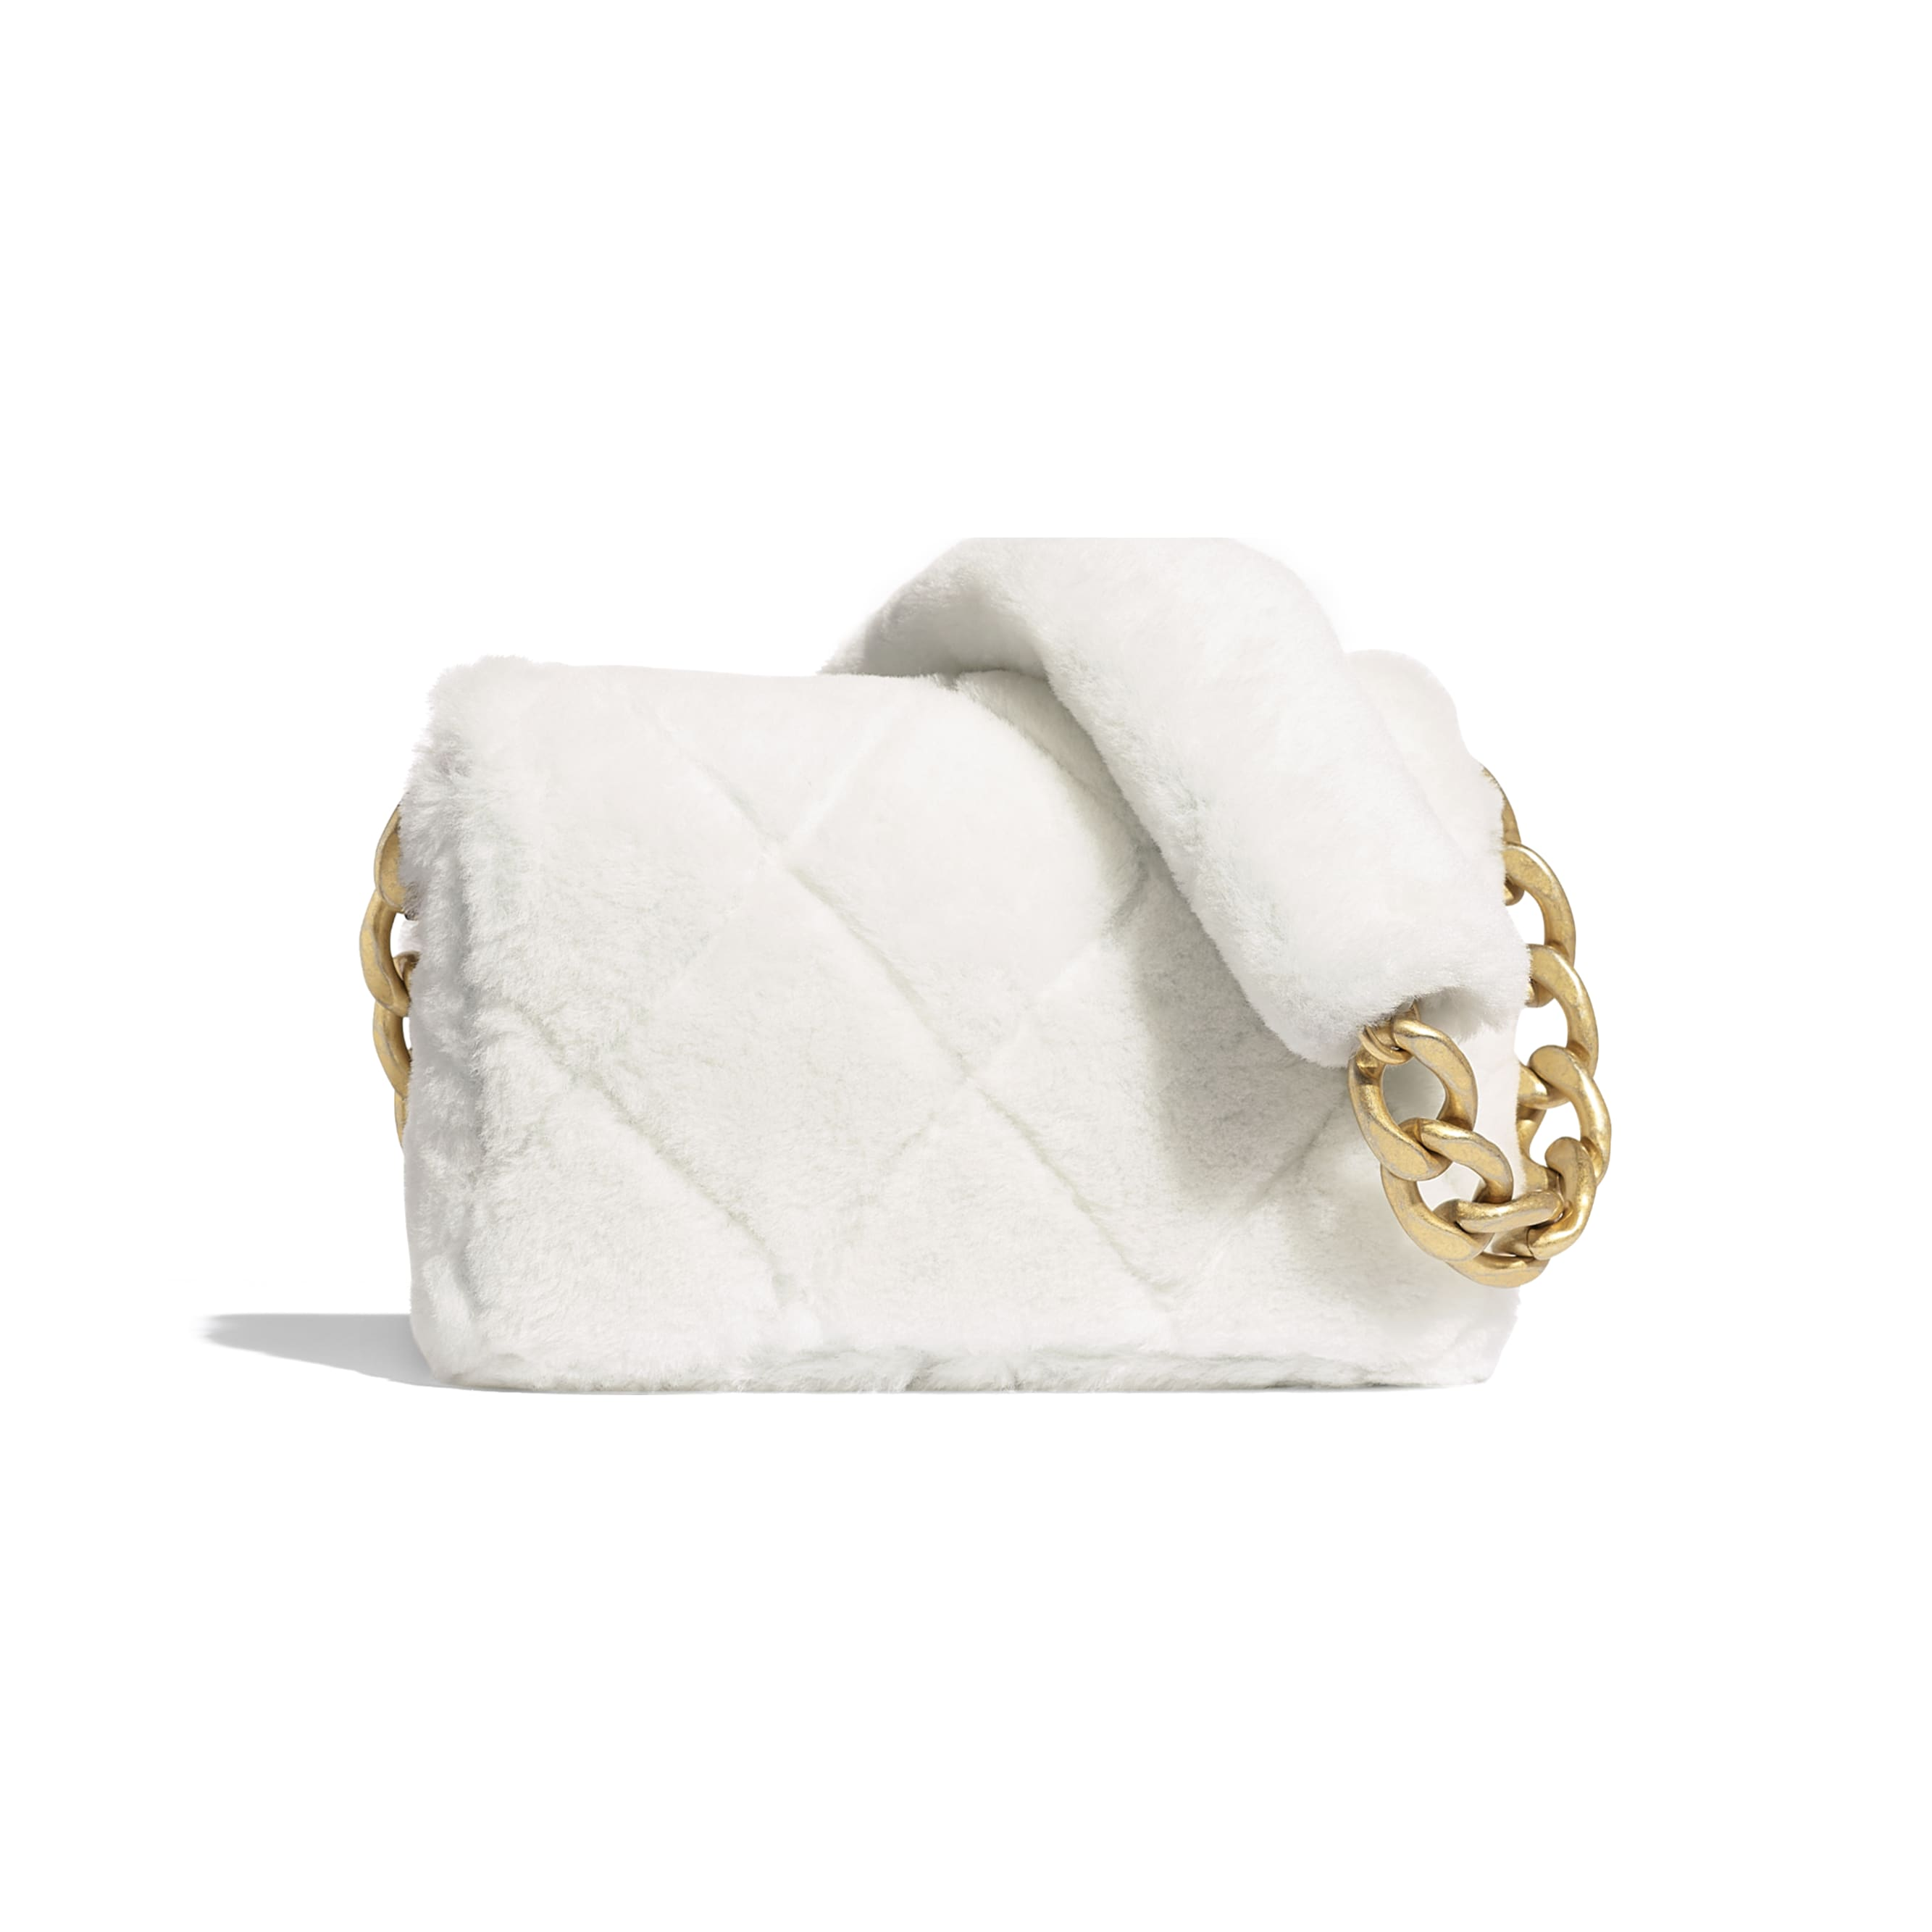 Flap Bag - White - Shearling Lambskin & Gold-Tone Metal - CHANEL - Alternative view - see standard sized version